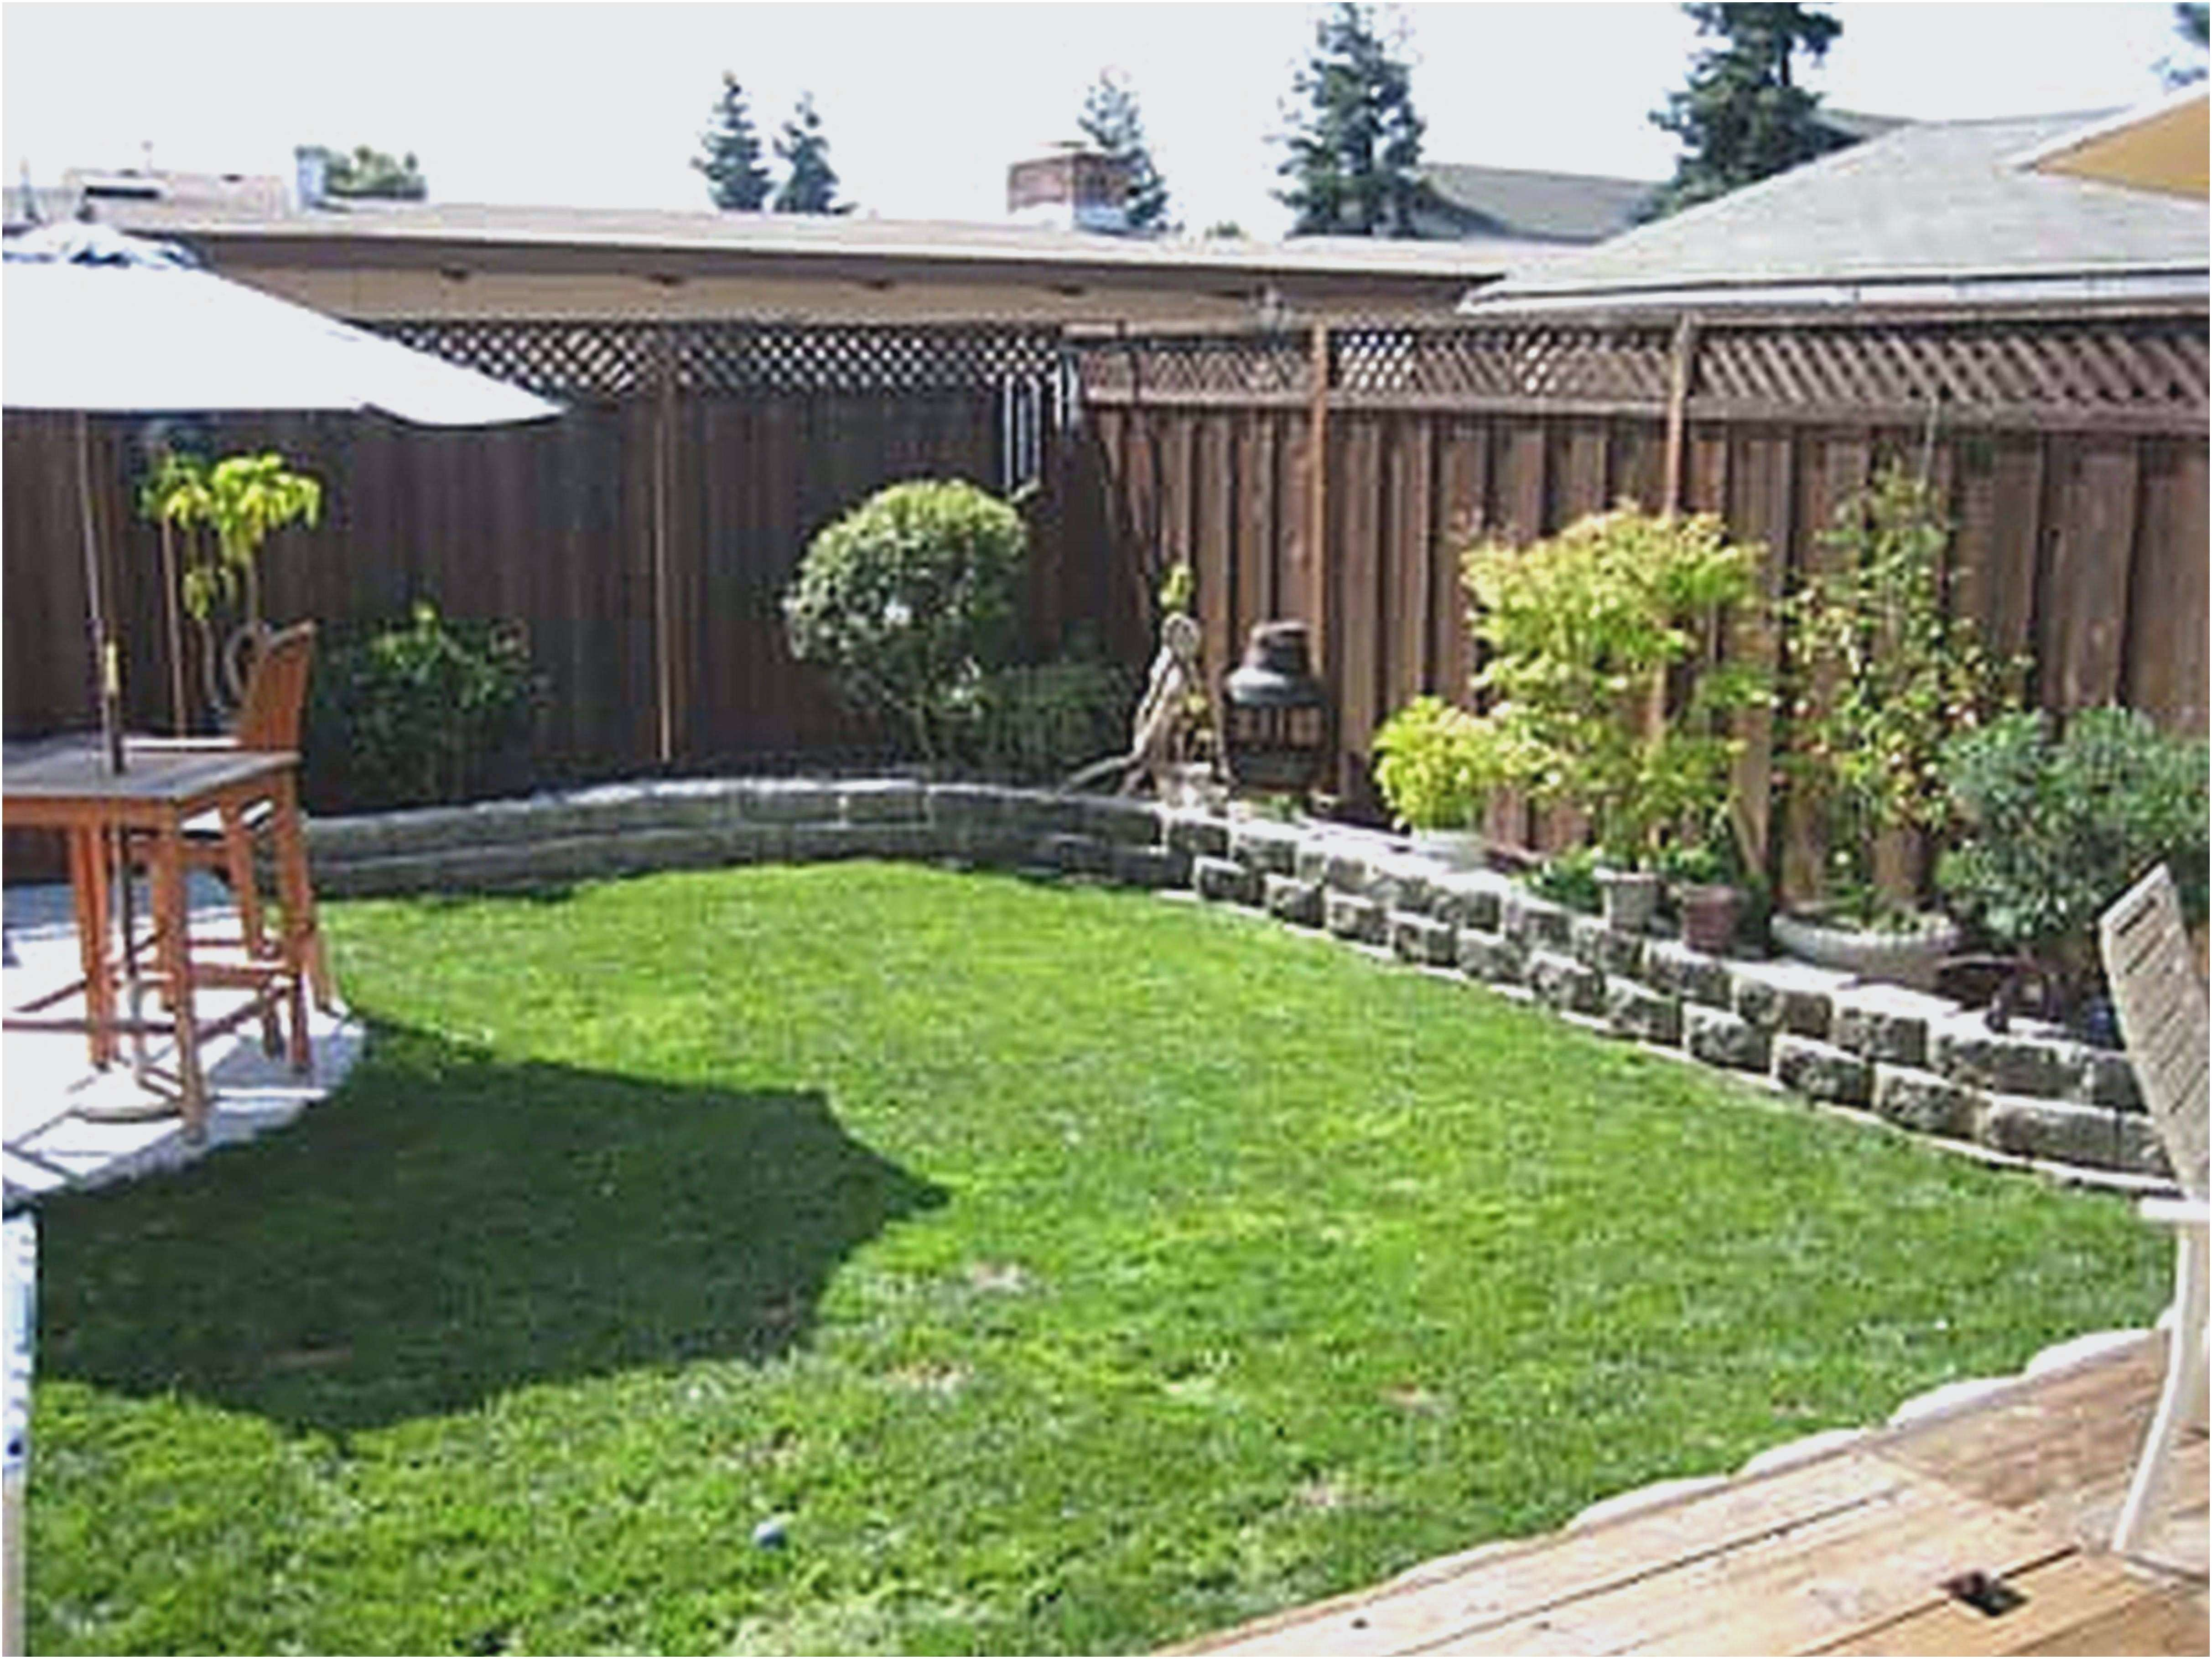 14 Clever Designs Of How To Makeover Backyard Landscaping Cost In 2020 Easy Backyard Landscaping Small Yard Landscaping Small Backyard Gardens